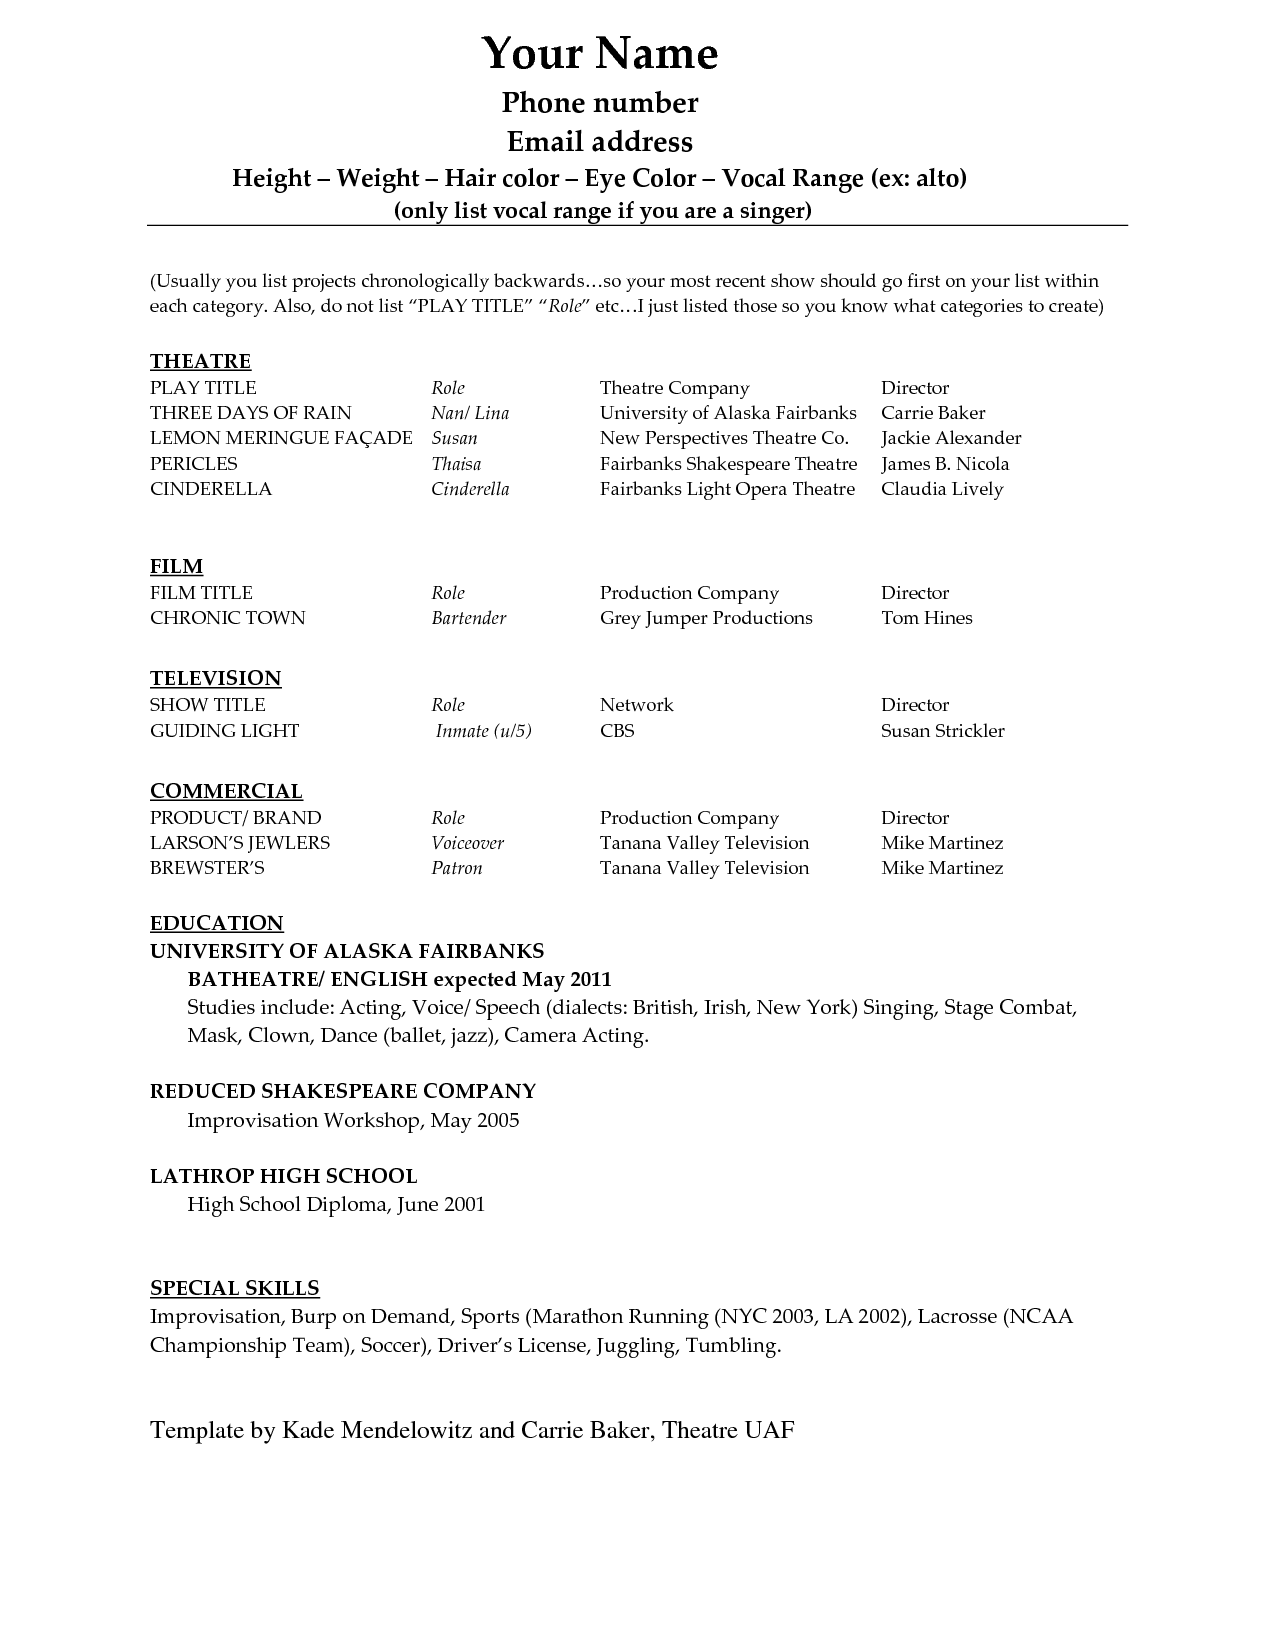 Free Resumes Templates To Download Adorable Acting Resume Template Download Free  Httpwwwresumecareer